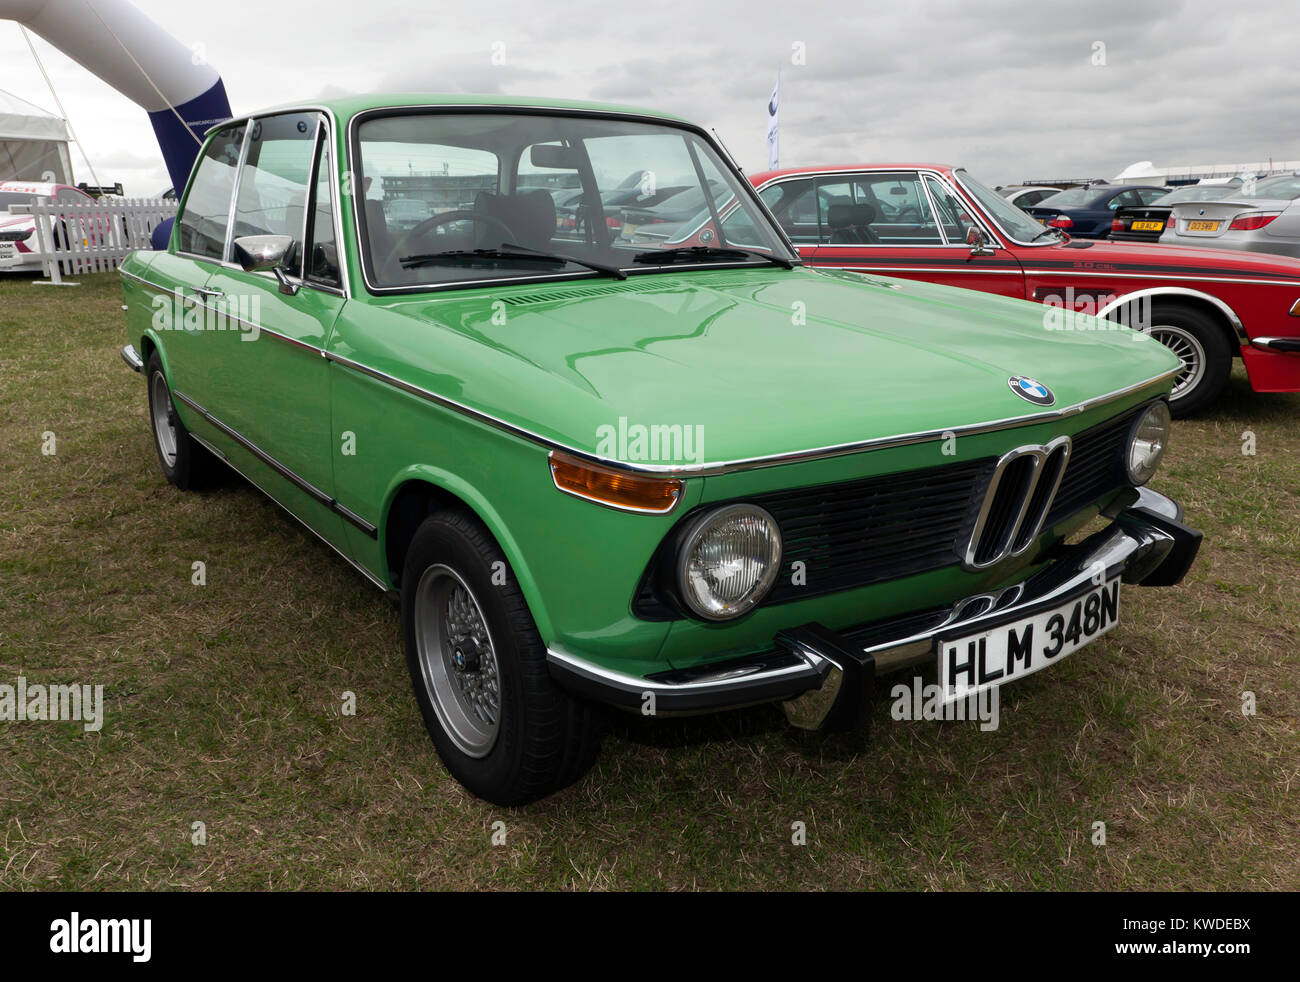 Bmw 2002 Tii Race Car >> Bmw 2002 Tii Stock Photos & Bmw 2002 Tii Stock Images - Alamy